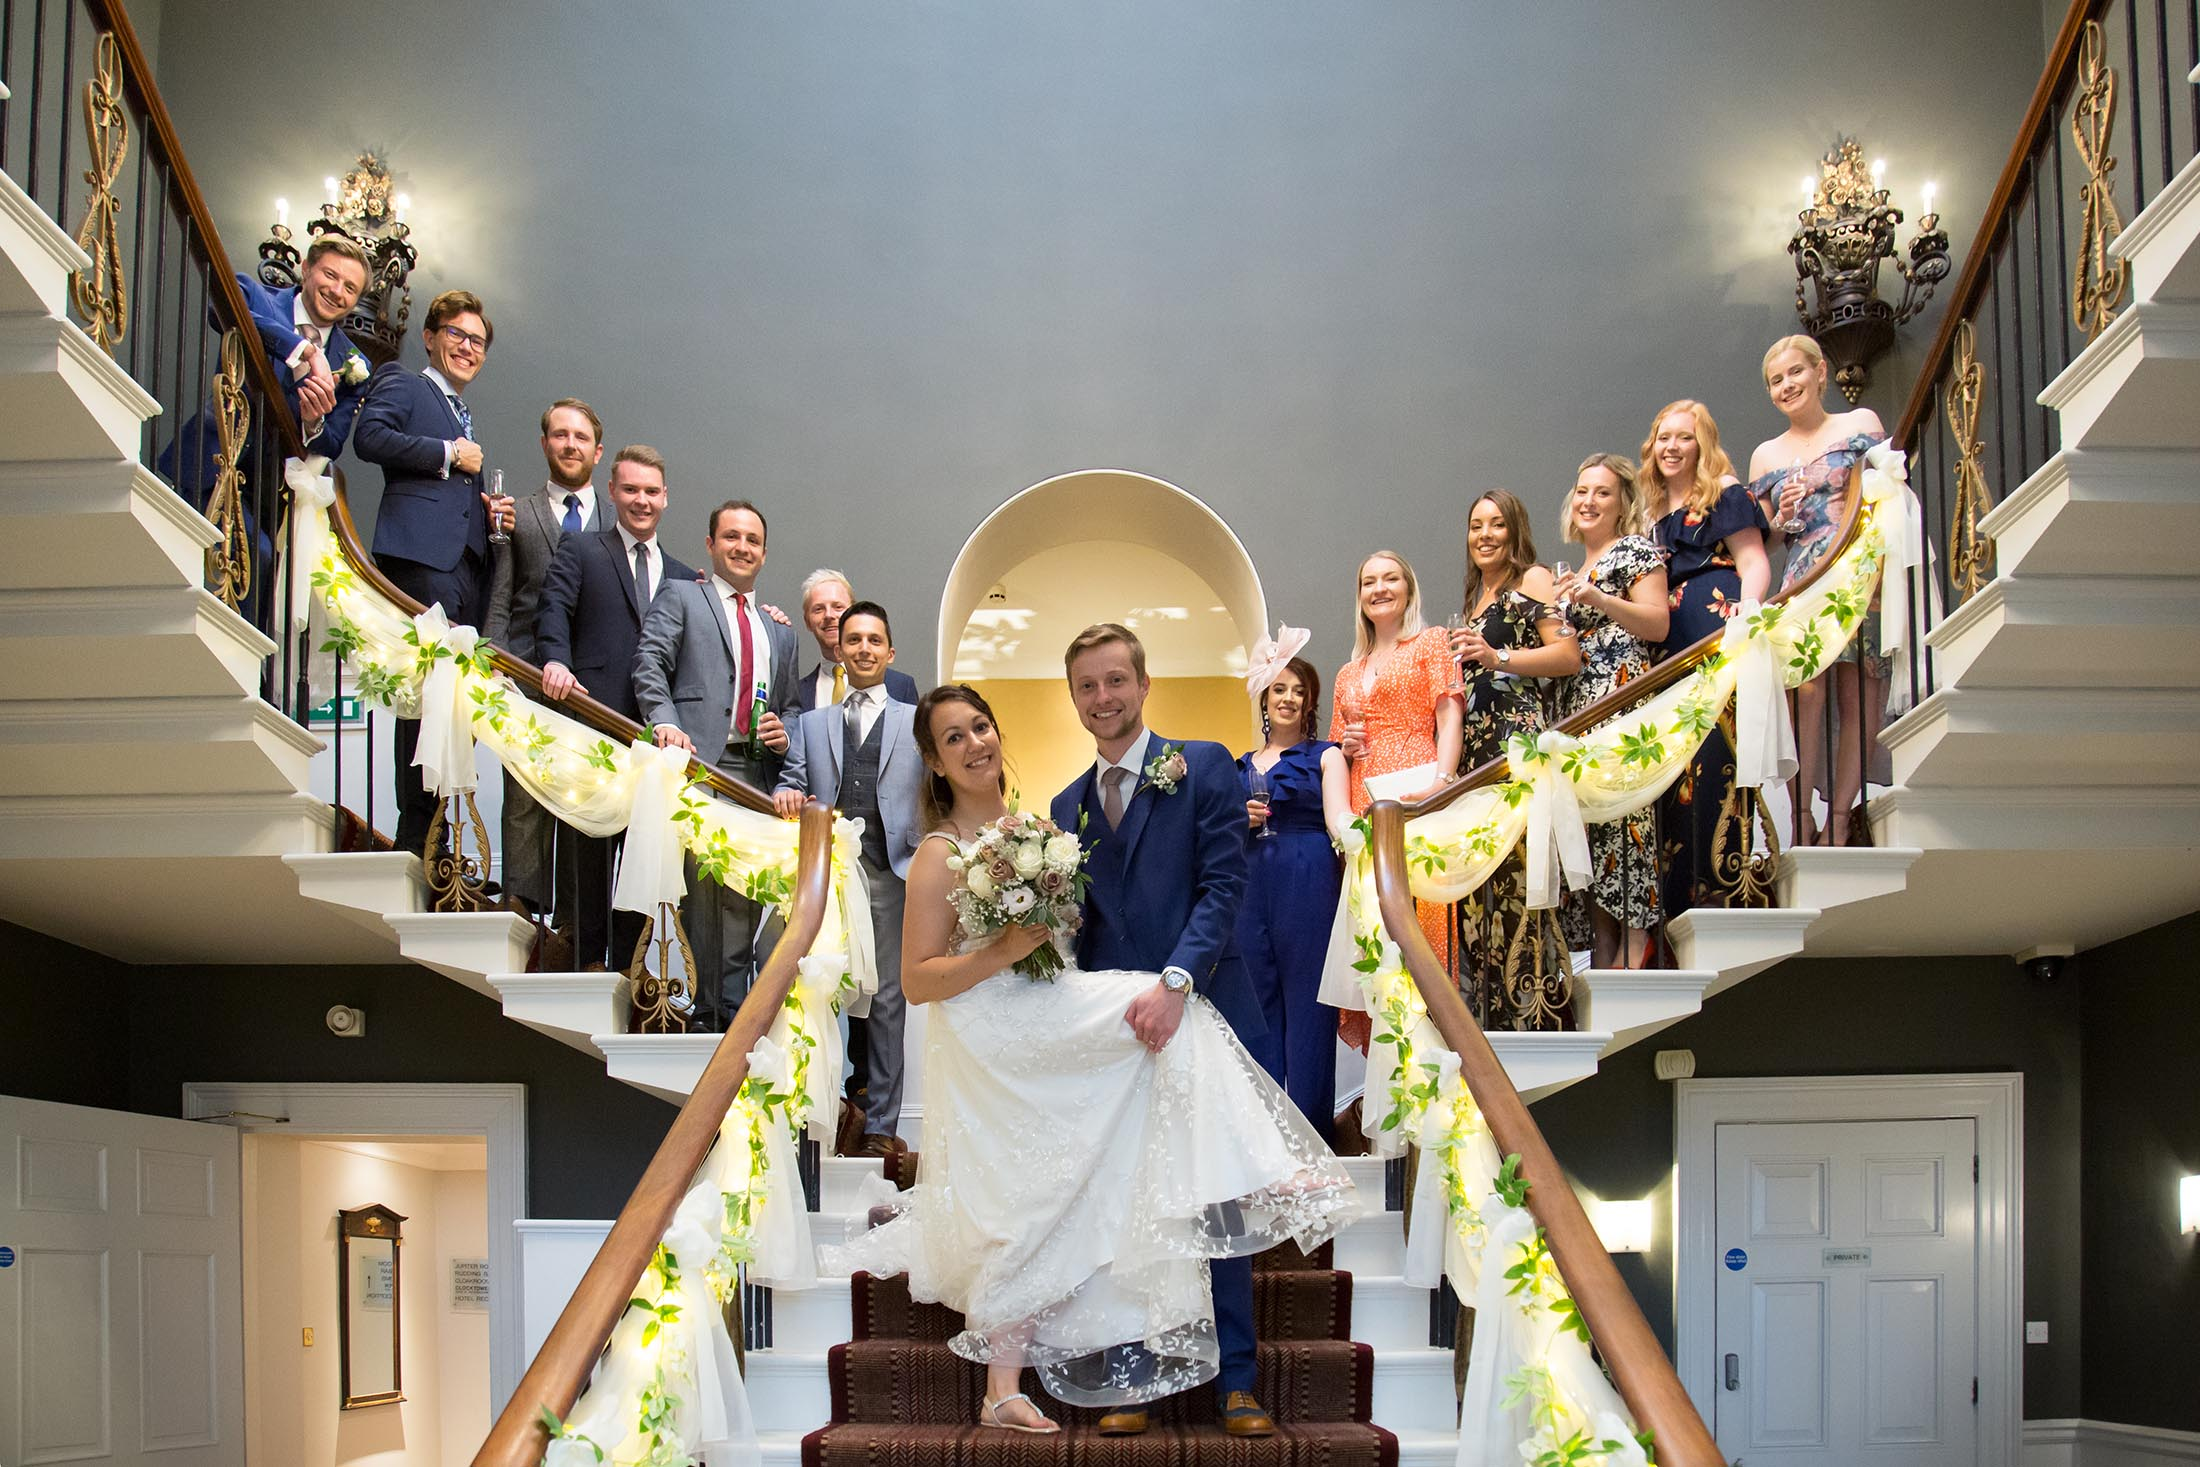 A Fun Bride and Groom Picture at Rudding Park